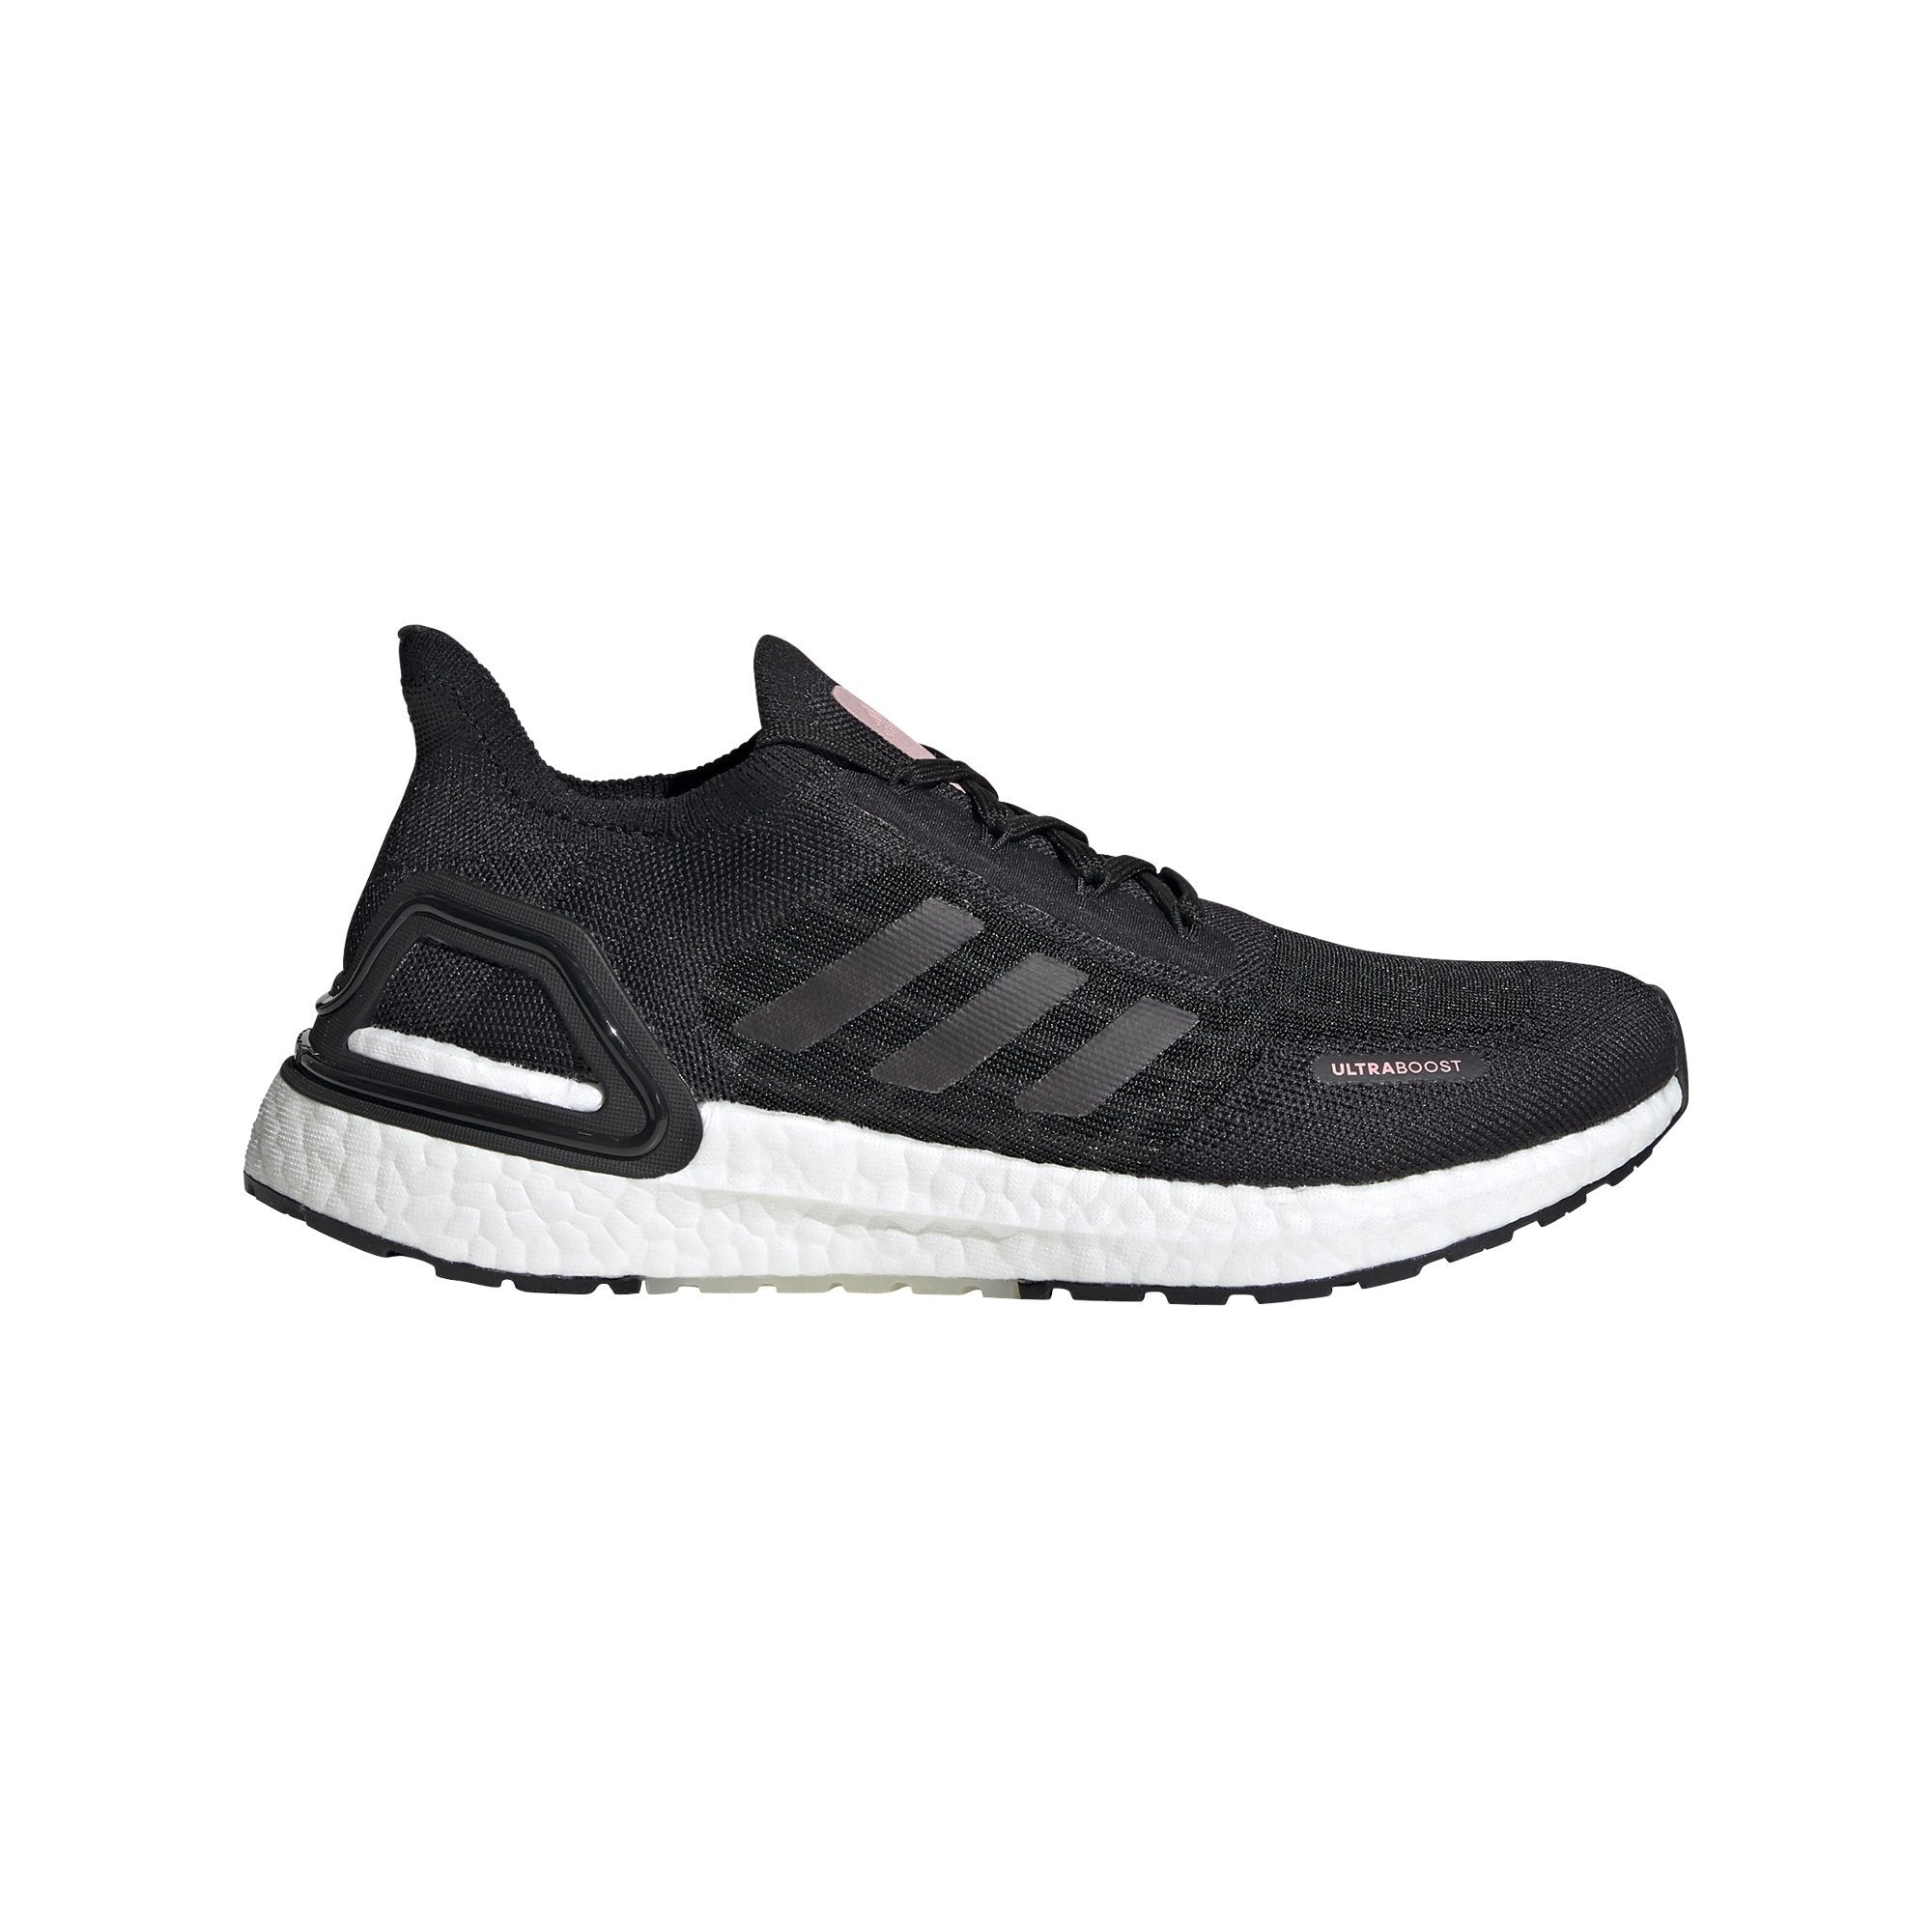 Adidas Womens Ultraboost Summer RDY - core black/core black/light flash red